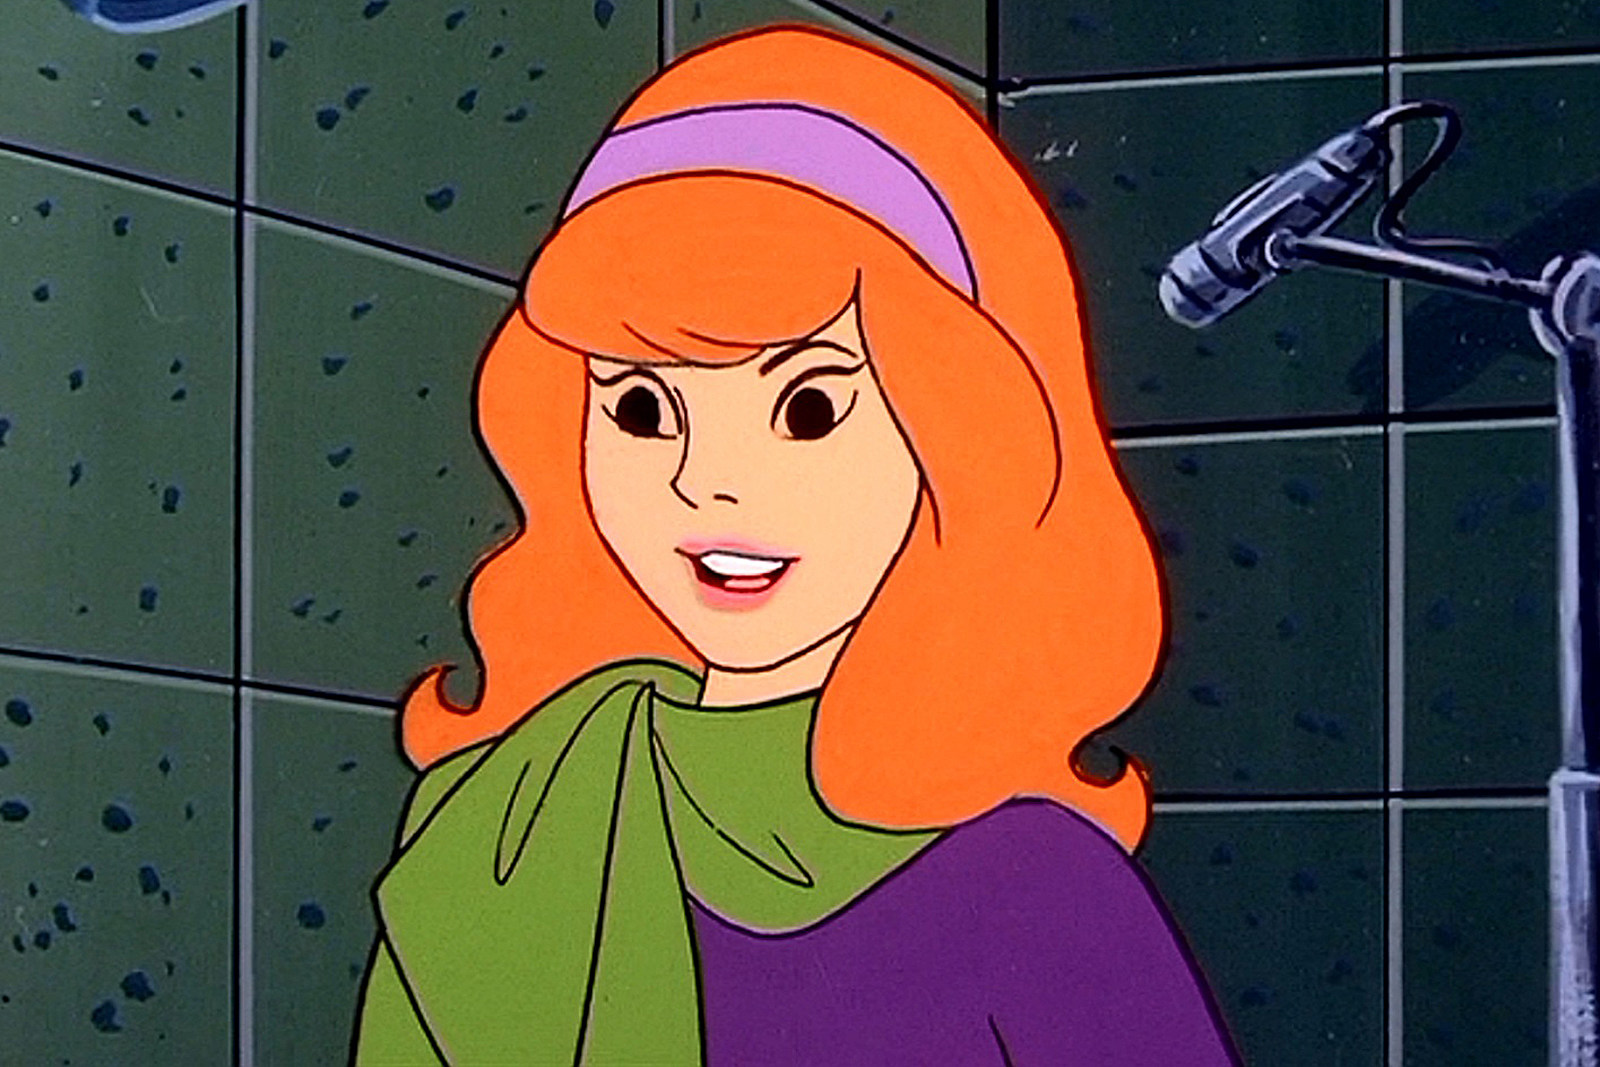 Heather North Voice Of Daphne In Scooby Doo Dies At 71